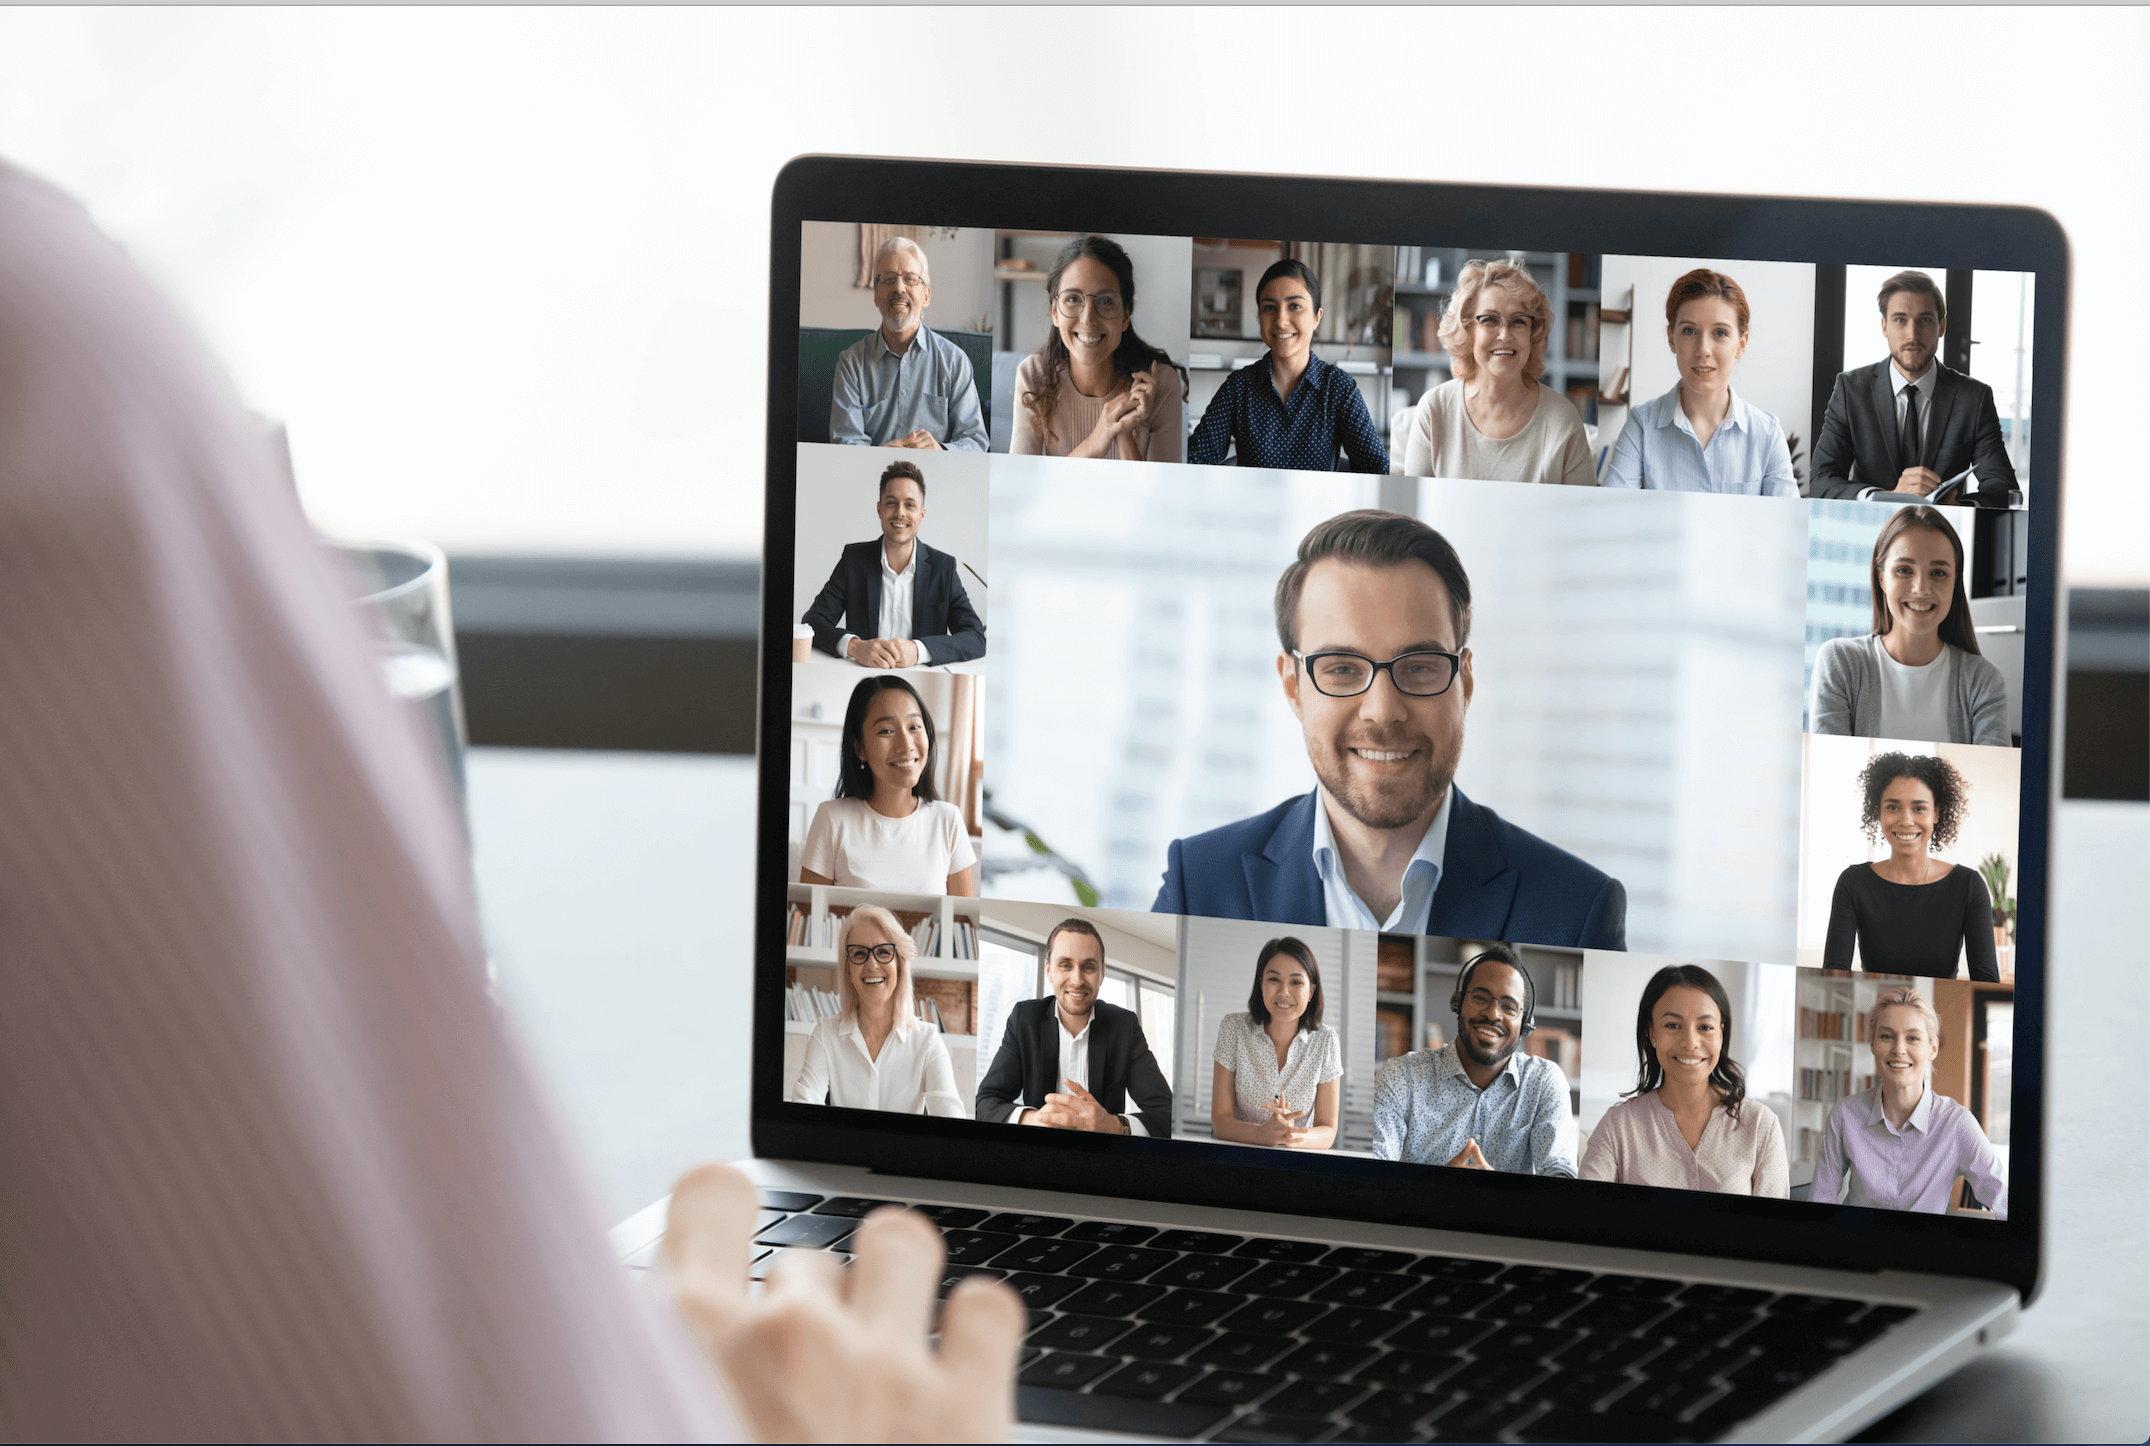 Best Practices for Leading Virtual Meetings